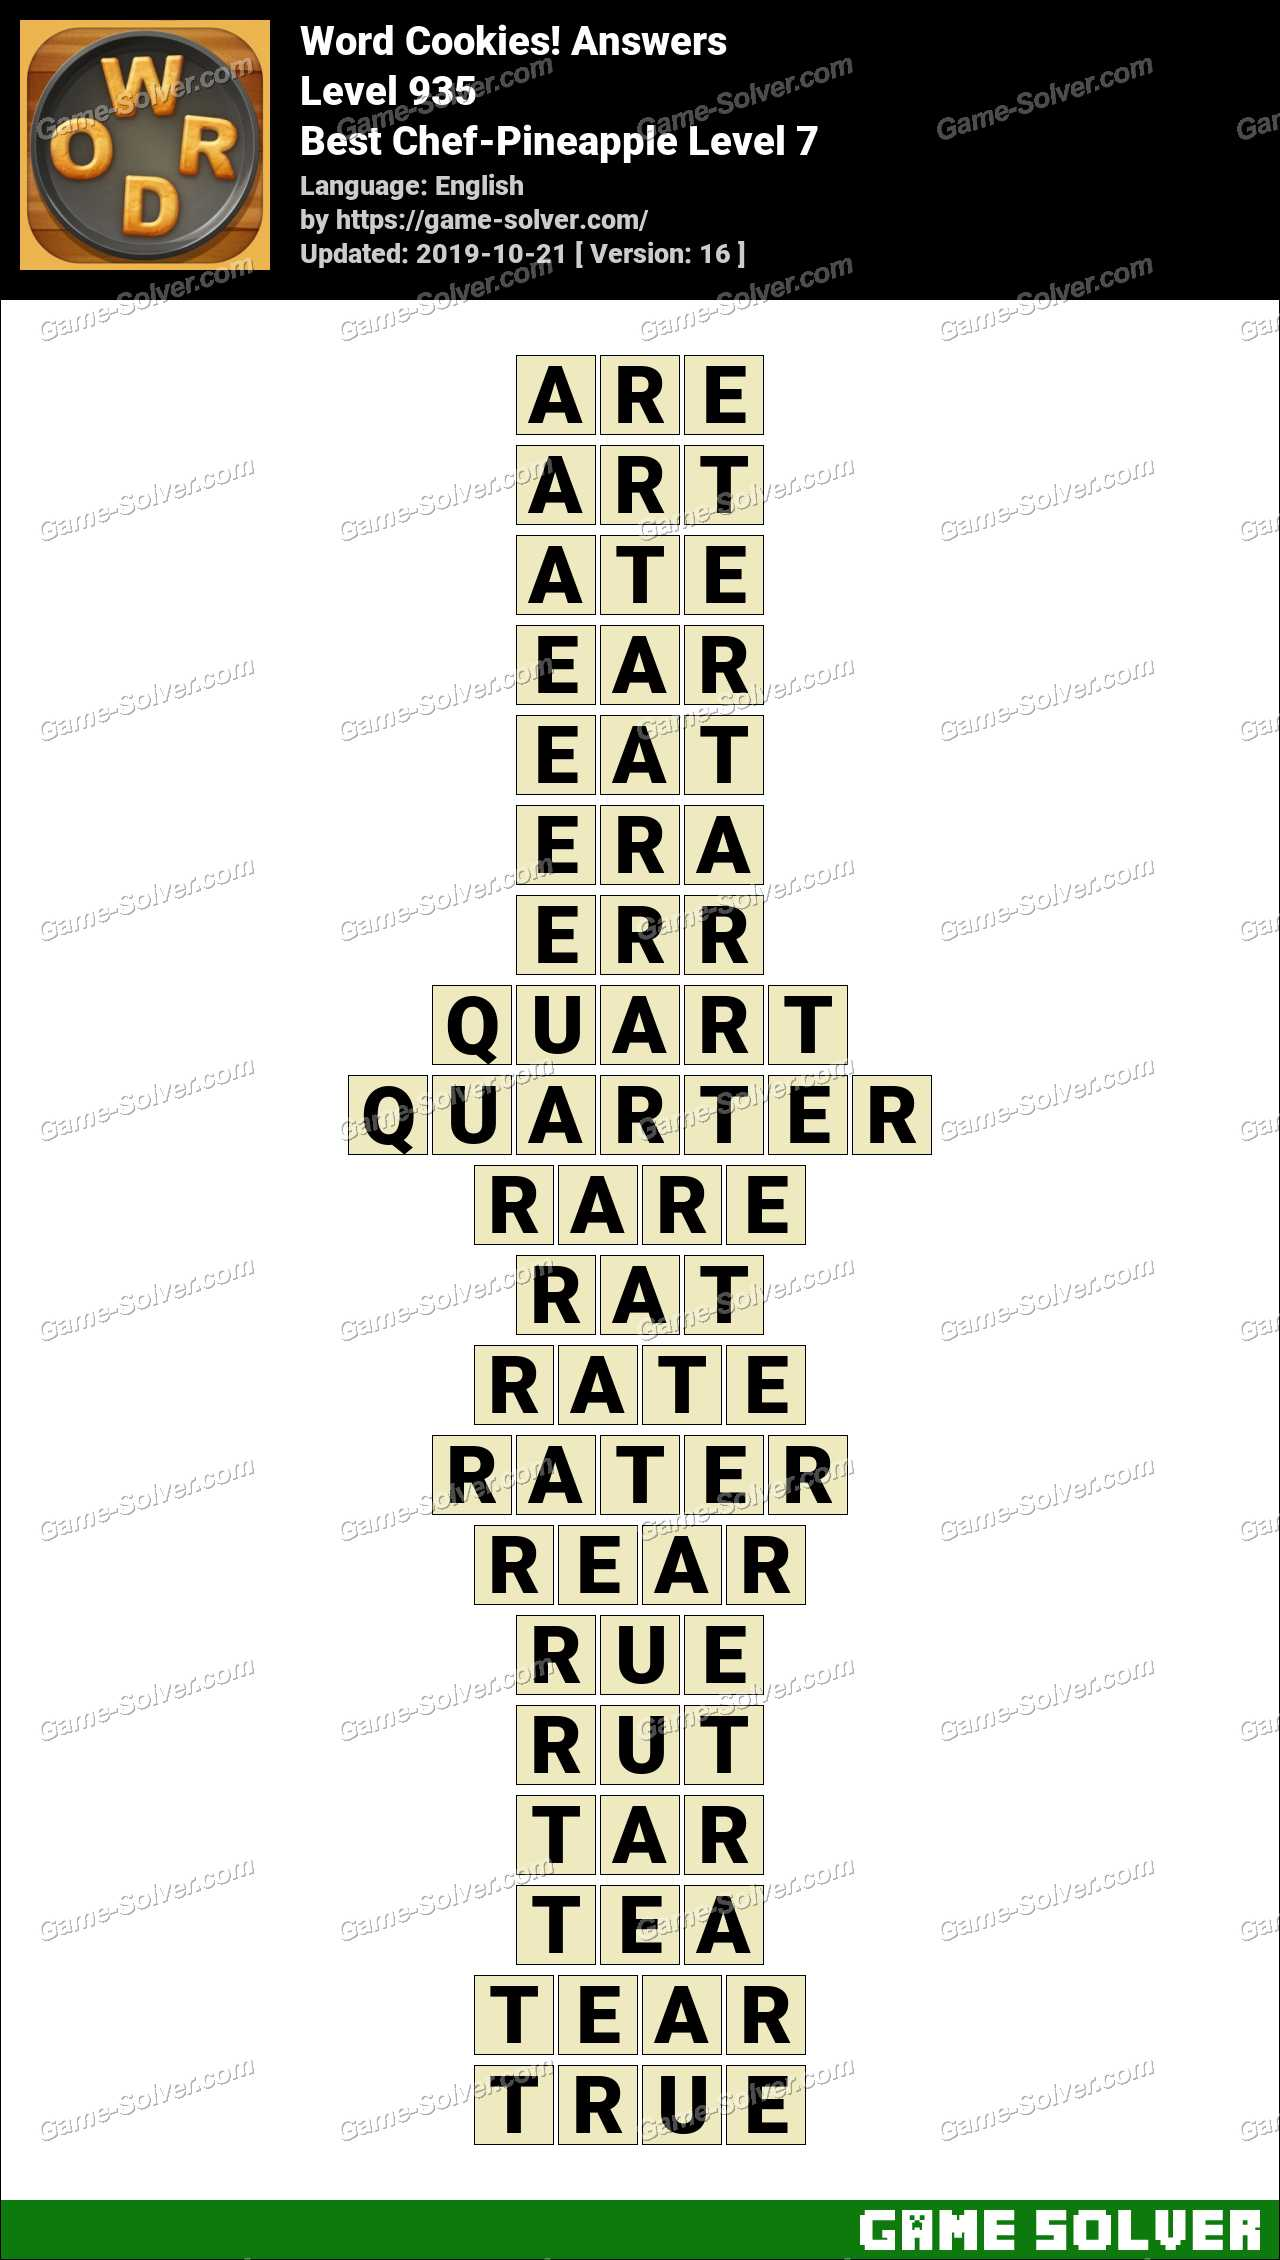 Word Cookies Best Chef-Pineapple Level 7 Answers